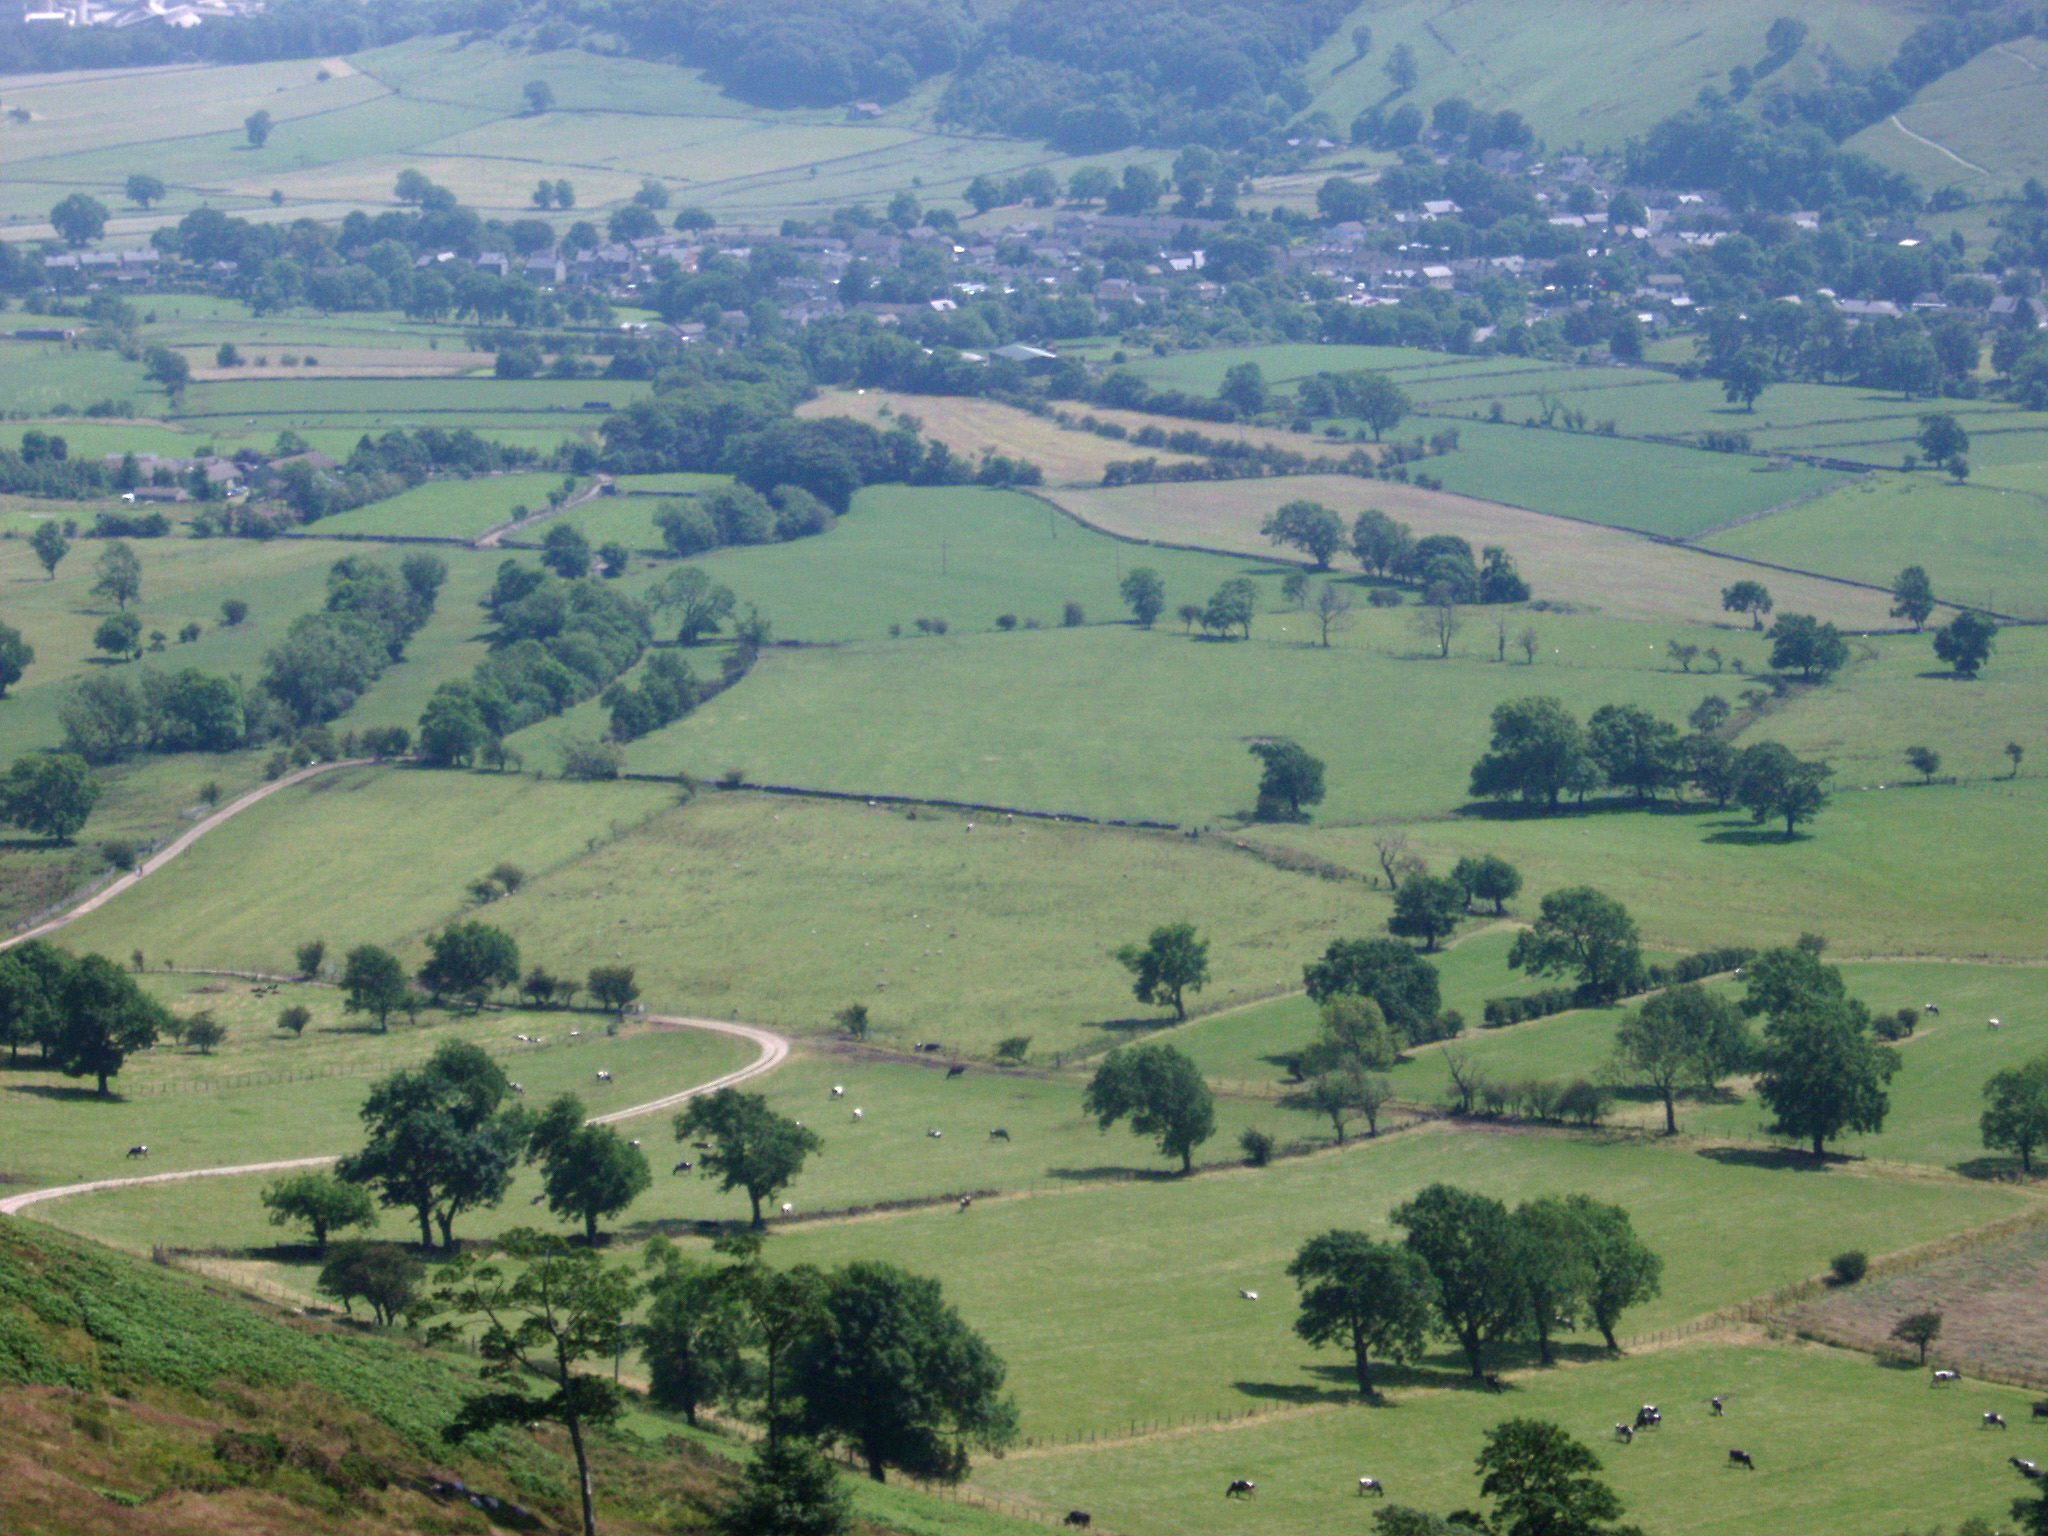 Derbyshire Dales landscape with rural fields and farmland dotted with trees in the lush English countryside